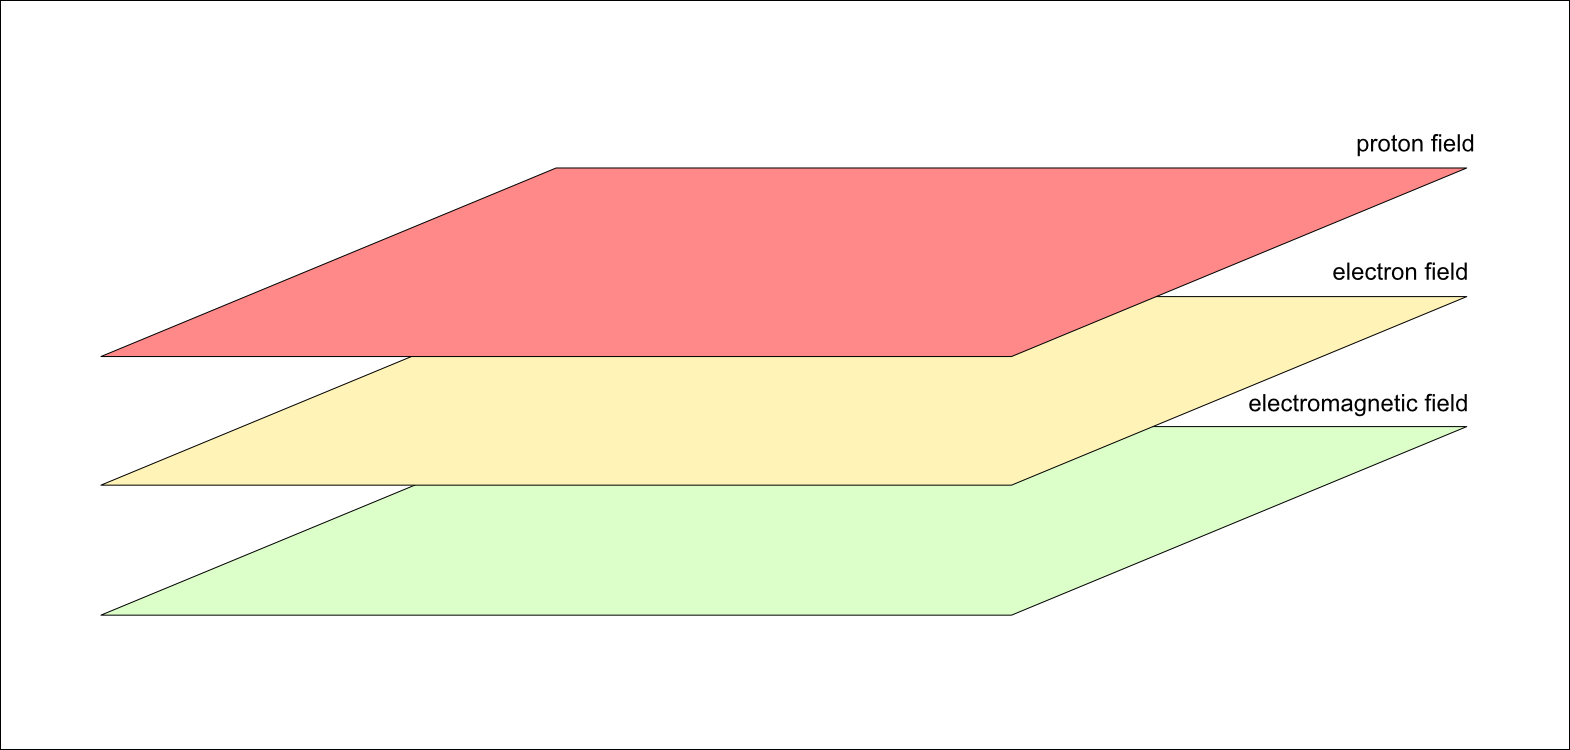 Figure 2. Three fields of space are drawn stacked. In reality, they are three-dimensional and not stacked and separated as depicted here. Instead, they are occupying the same space, completely blended with each other.